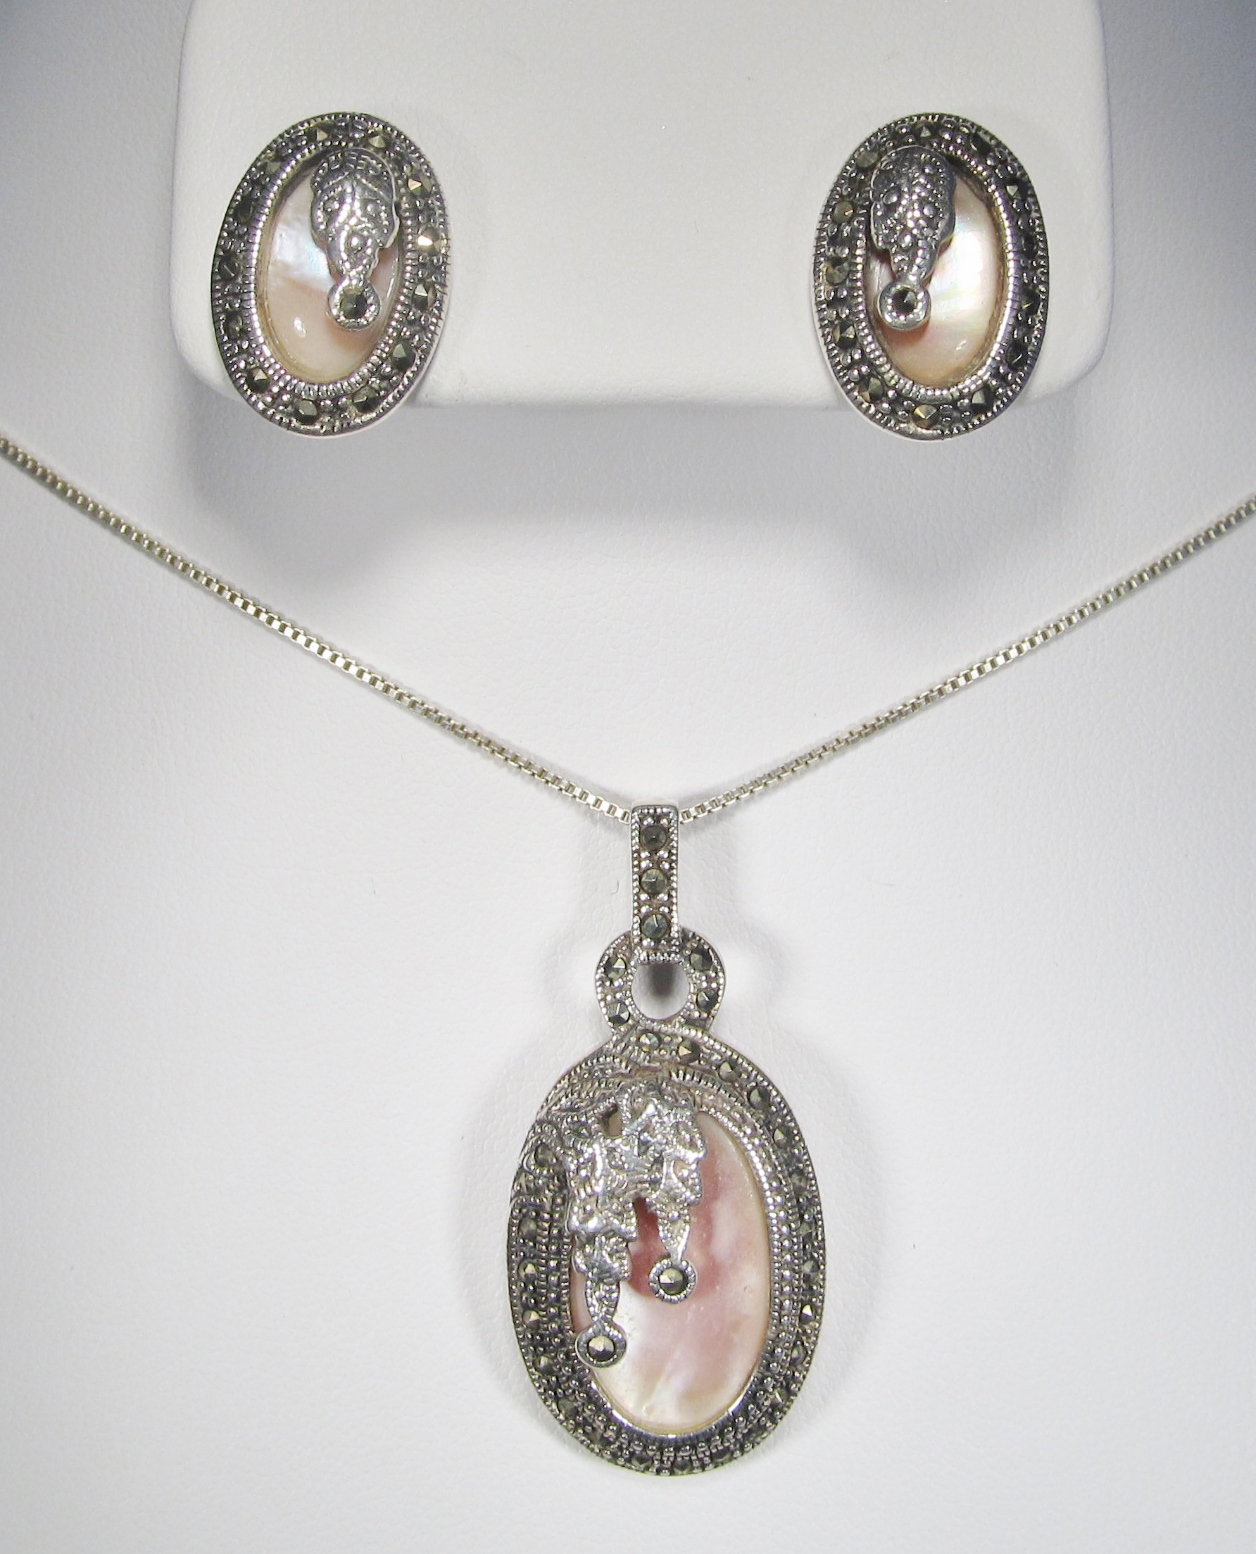 b5514940122bd Sterling Silver & Mother of Pearl Necklace & Earring Set WC-181 ...